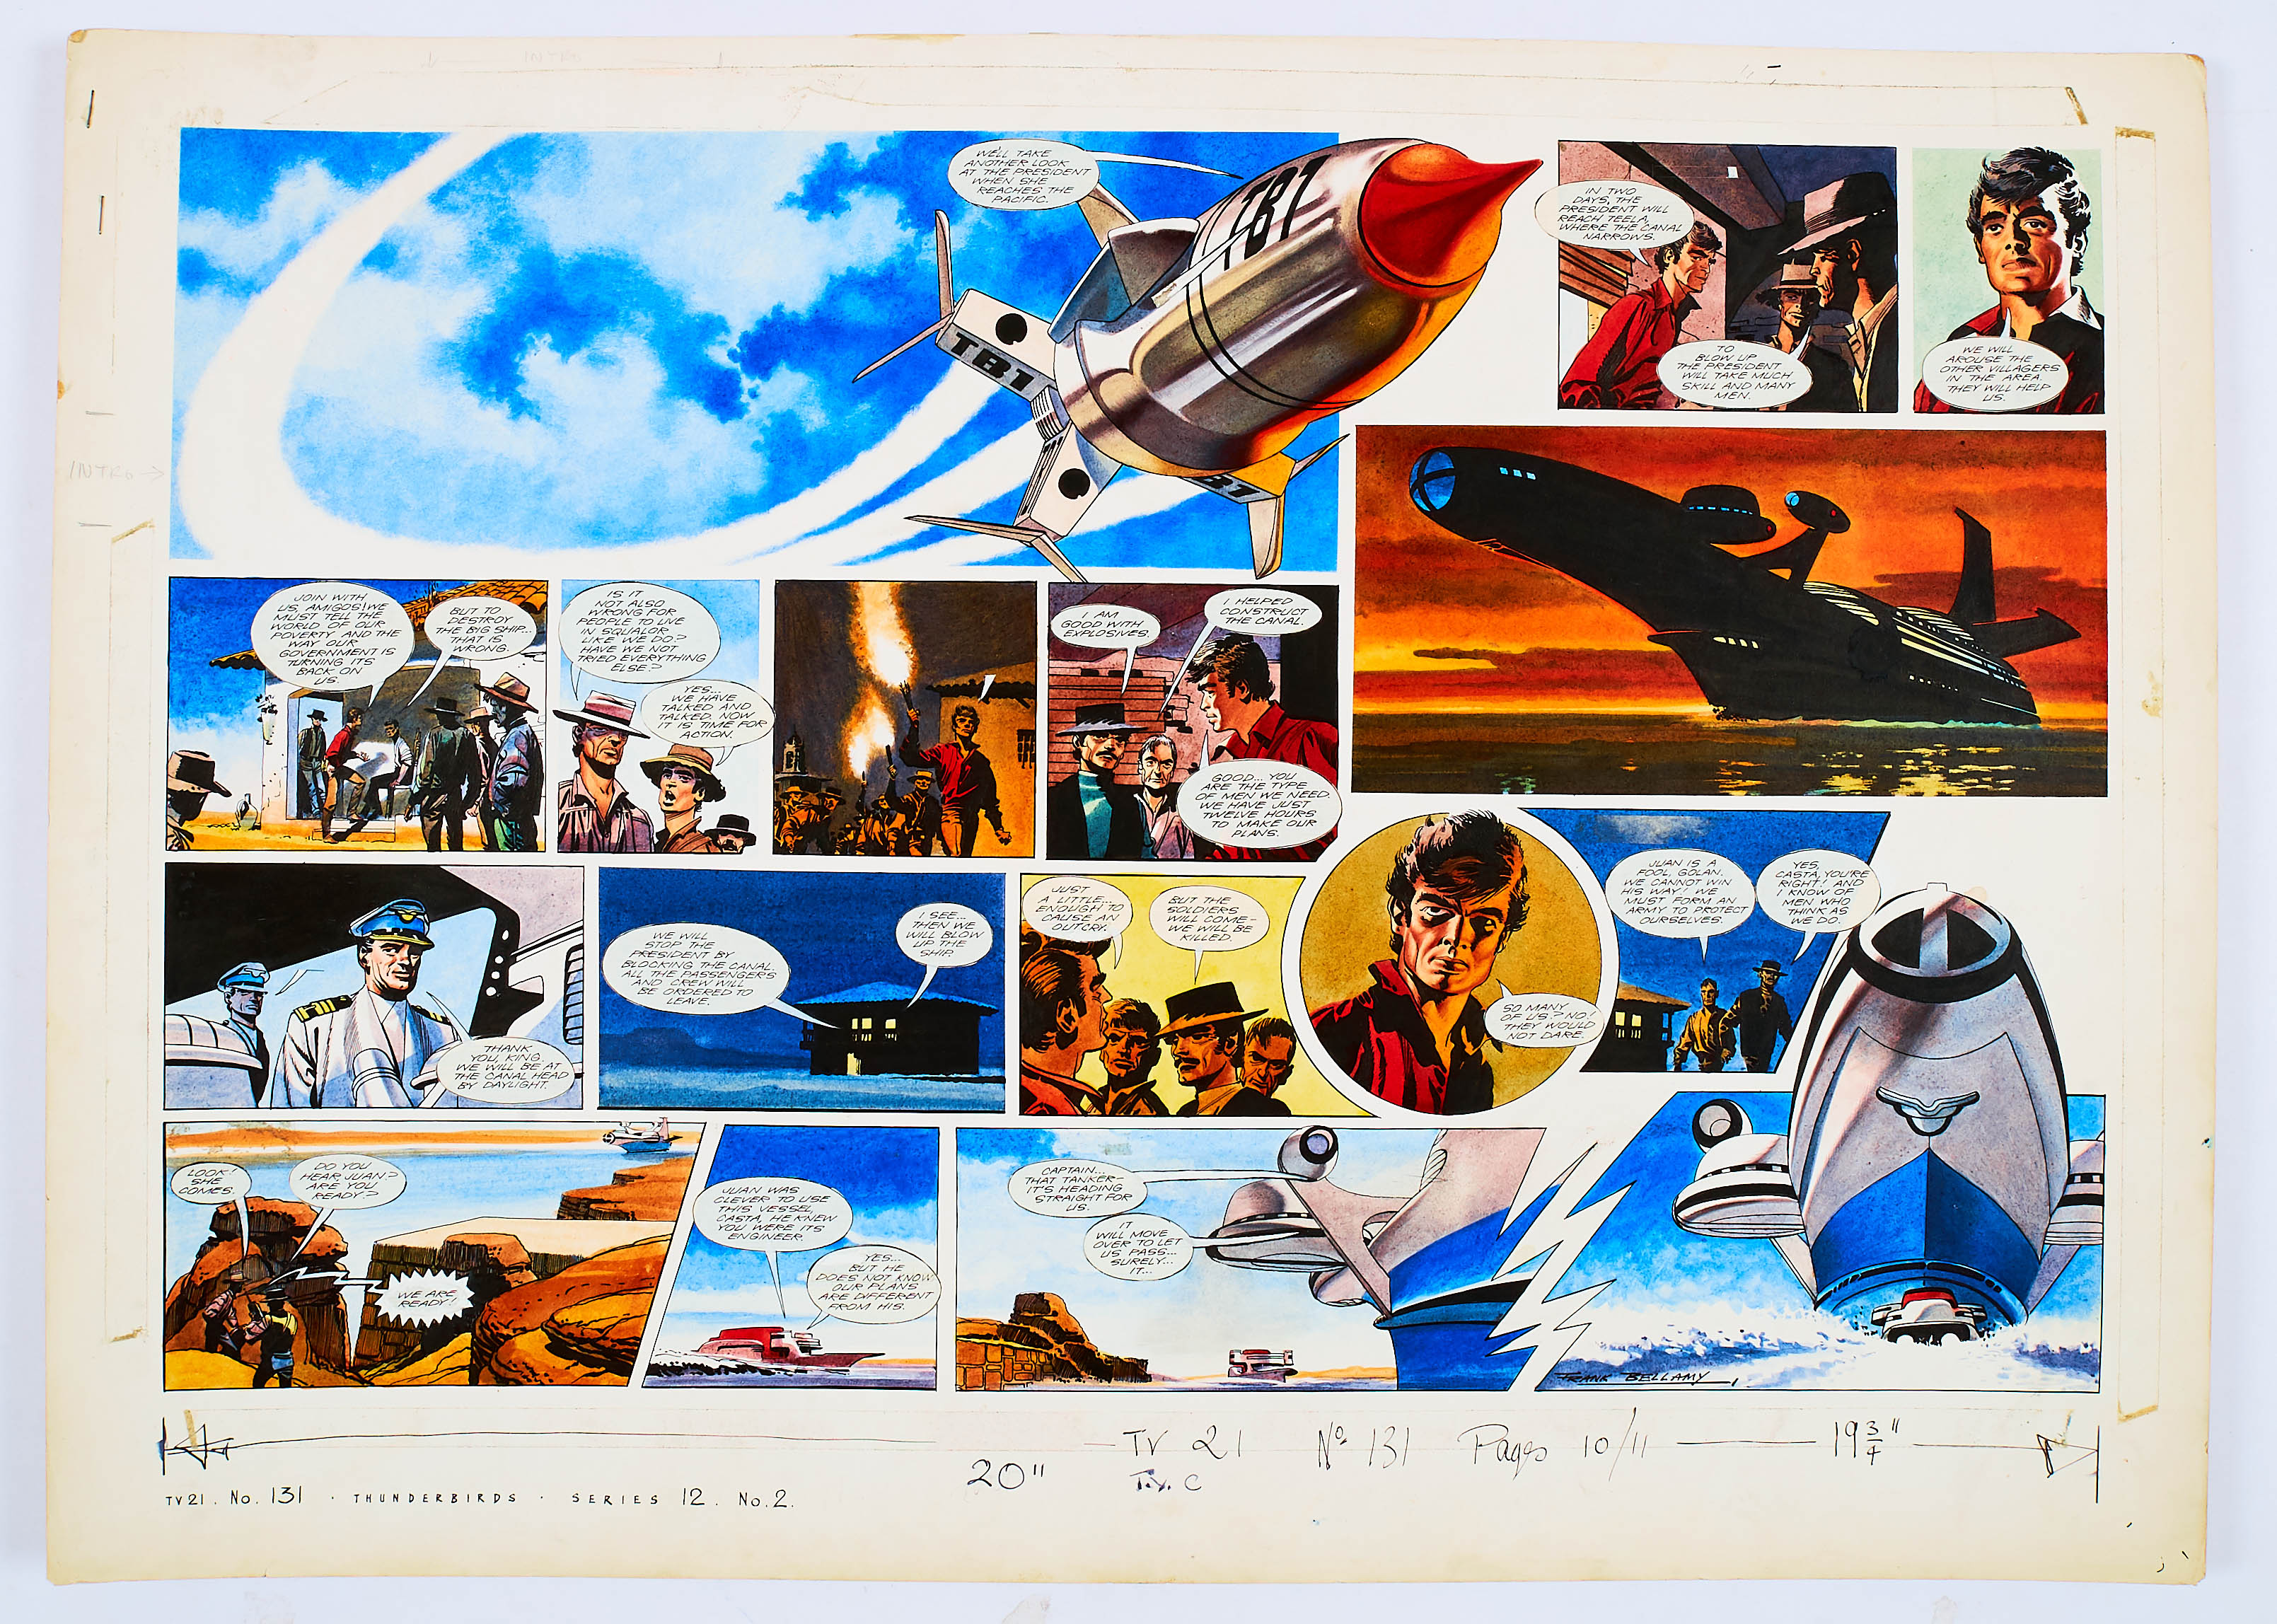 Lot 102 - Thunderbirds original double-page artwork (1967) drawn, painted and signed by Frank Bellamy for TV